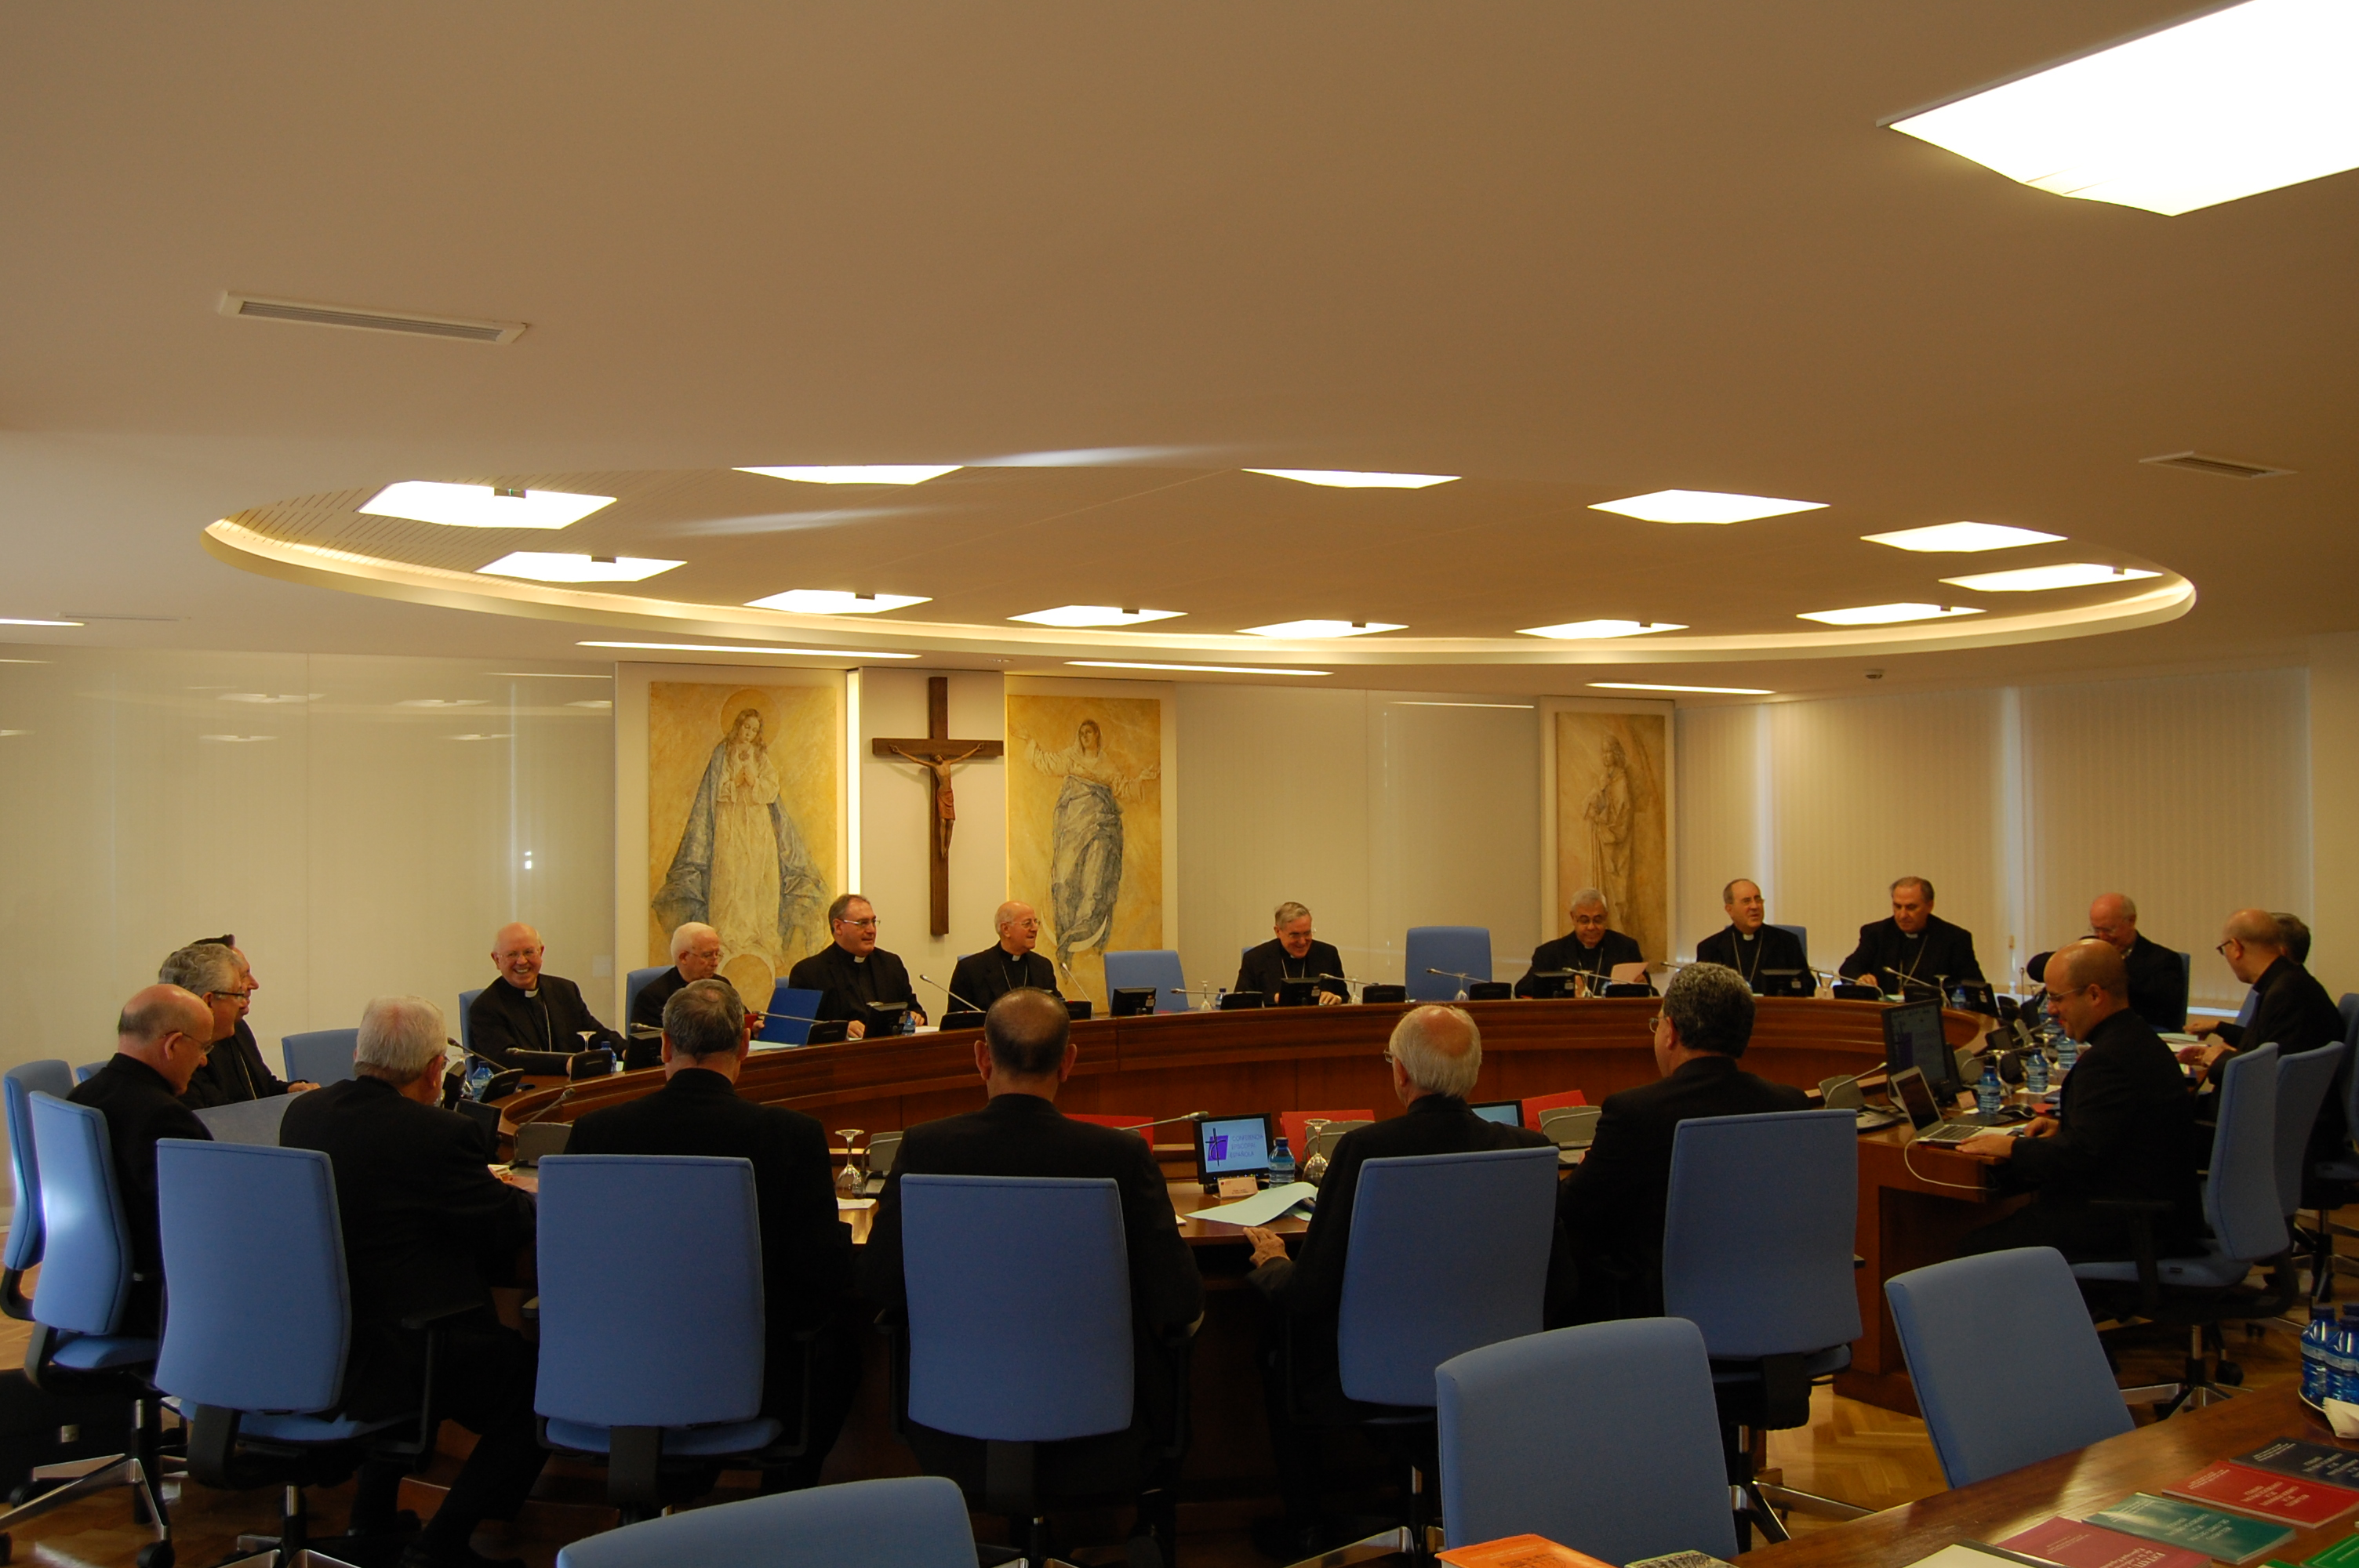 Members of the Permanent Commission of the Spanish bishops' conference